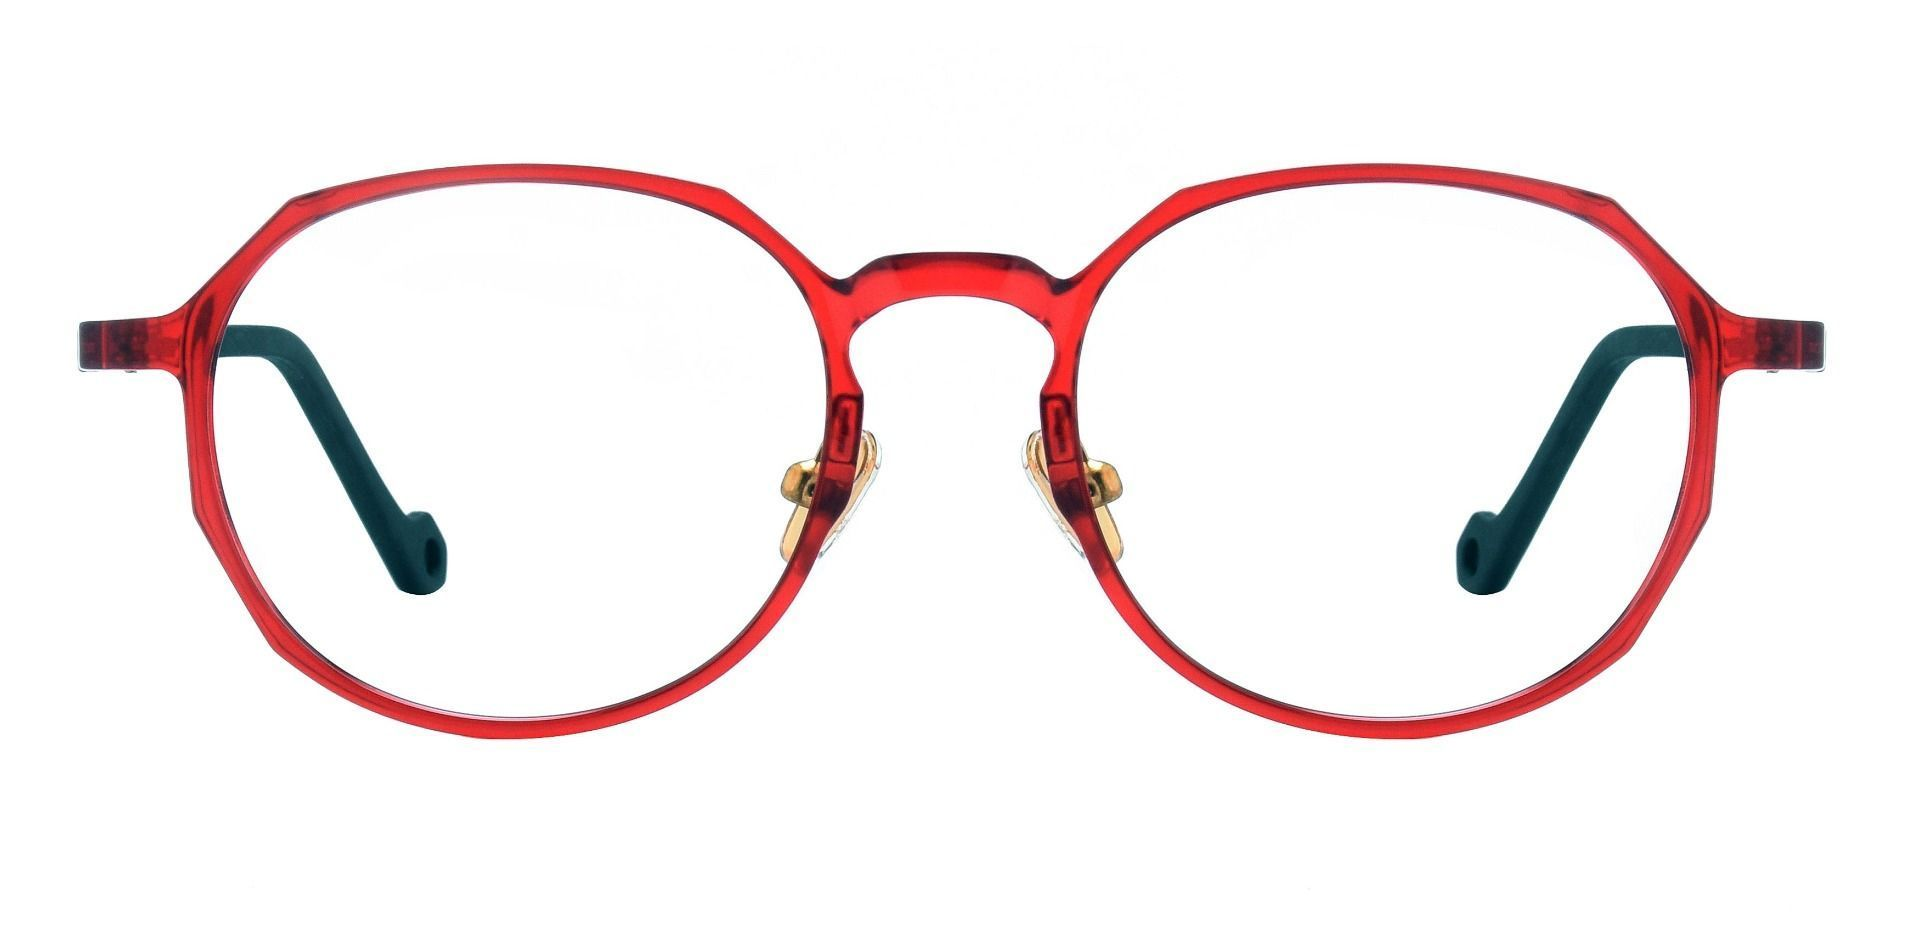 Everly Geometric Prescription Glasses - The Frame Is Red And Black